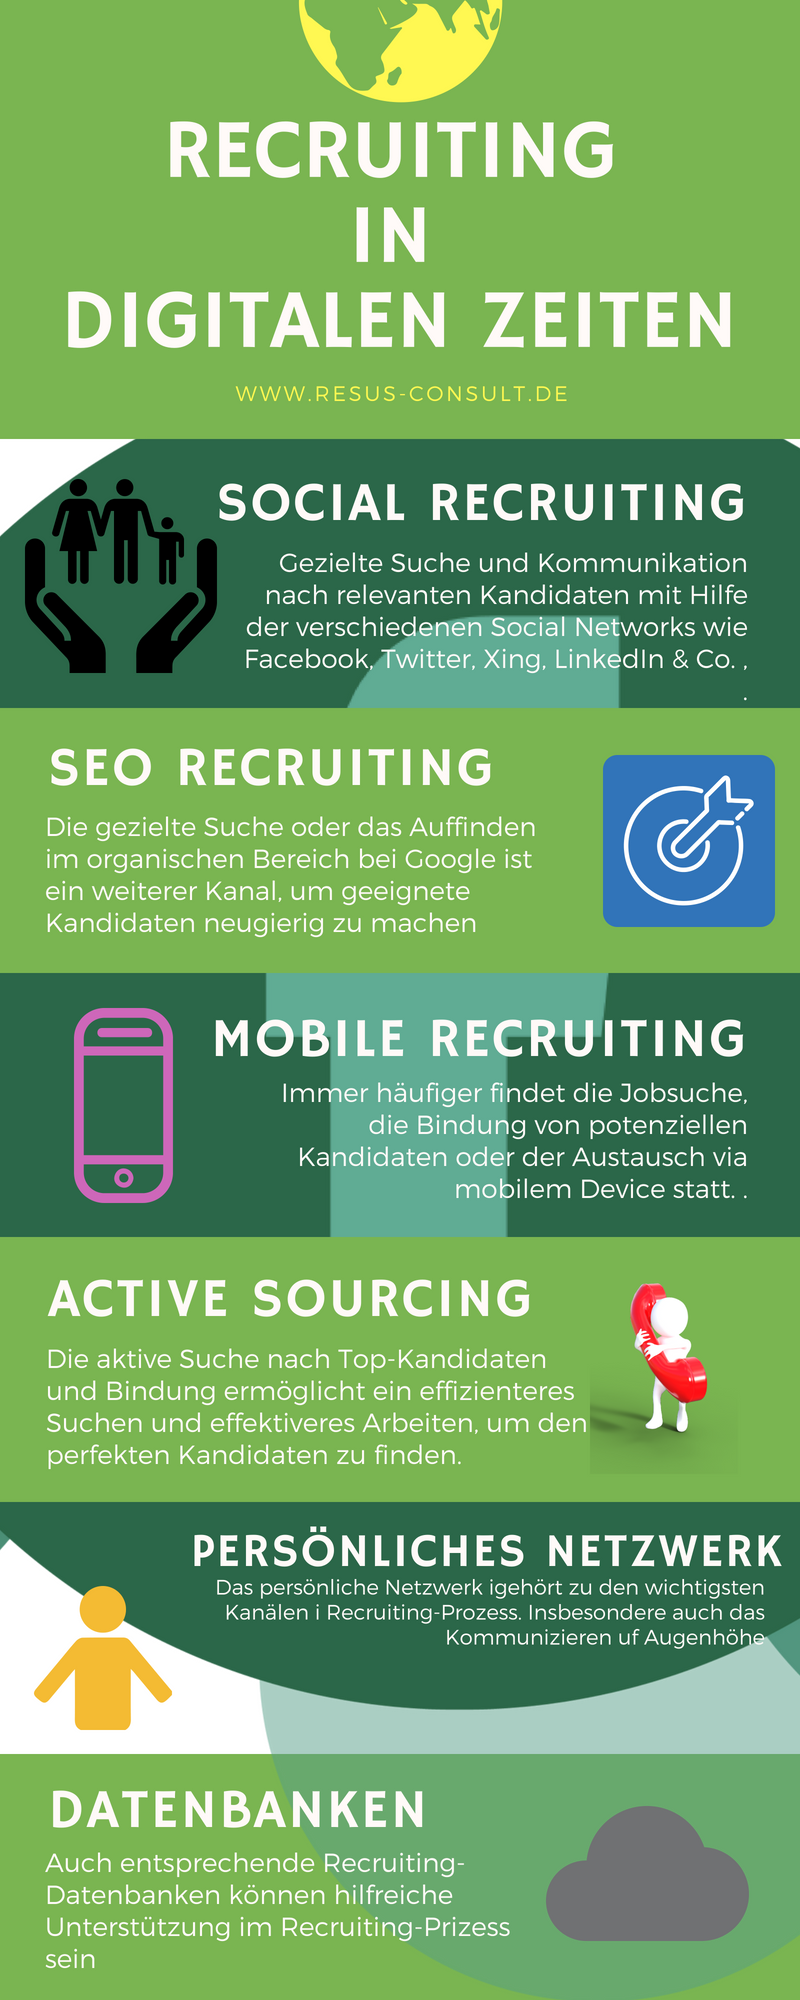 Recruiting in digitalen Zeiten